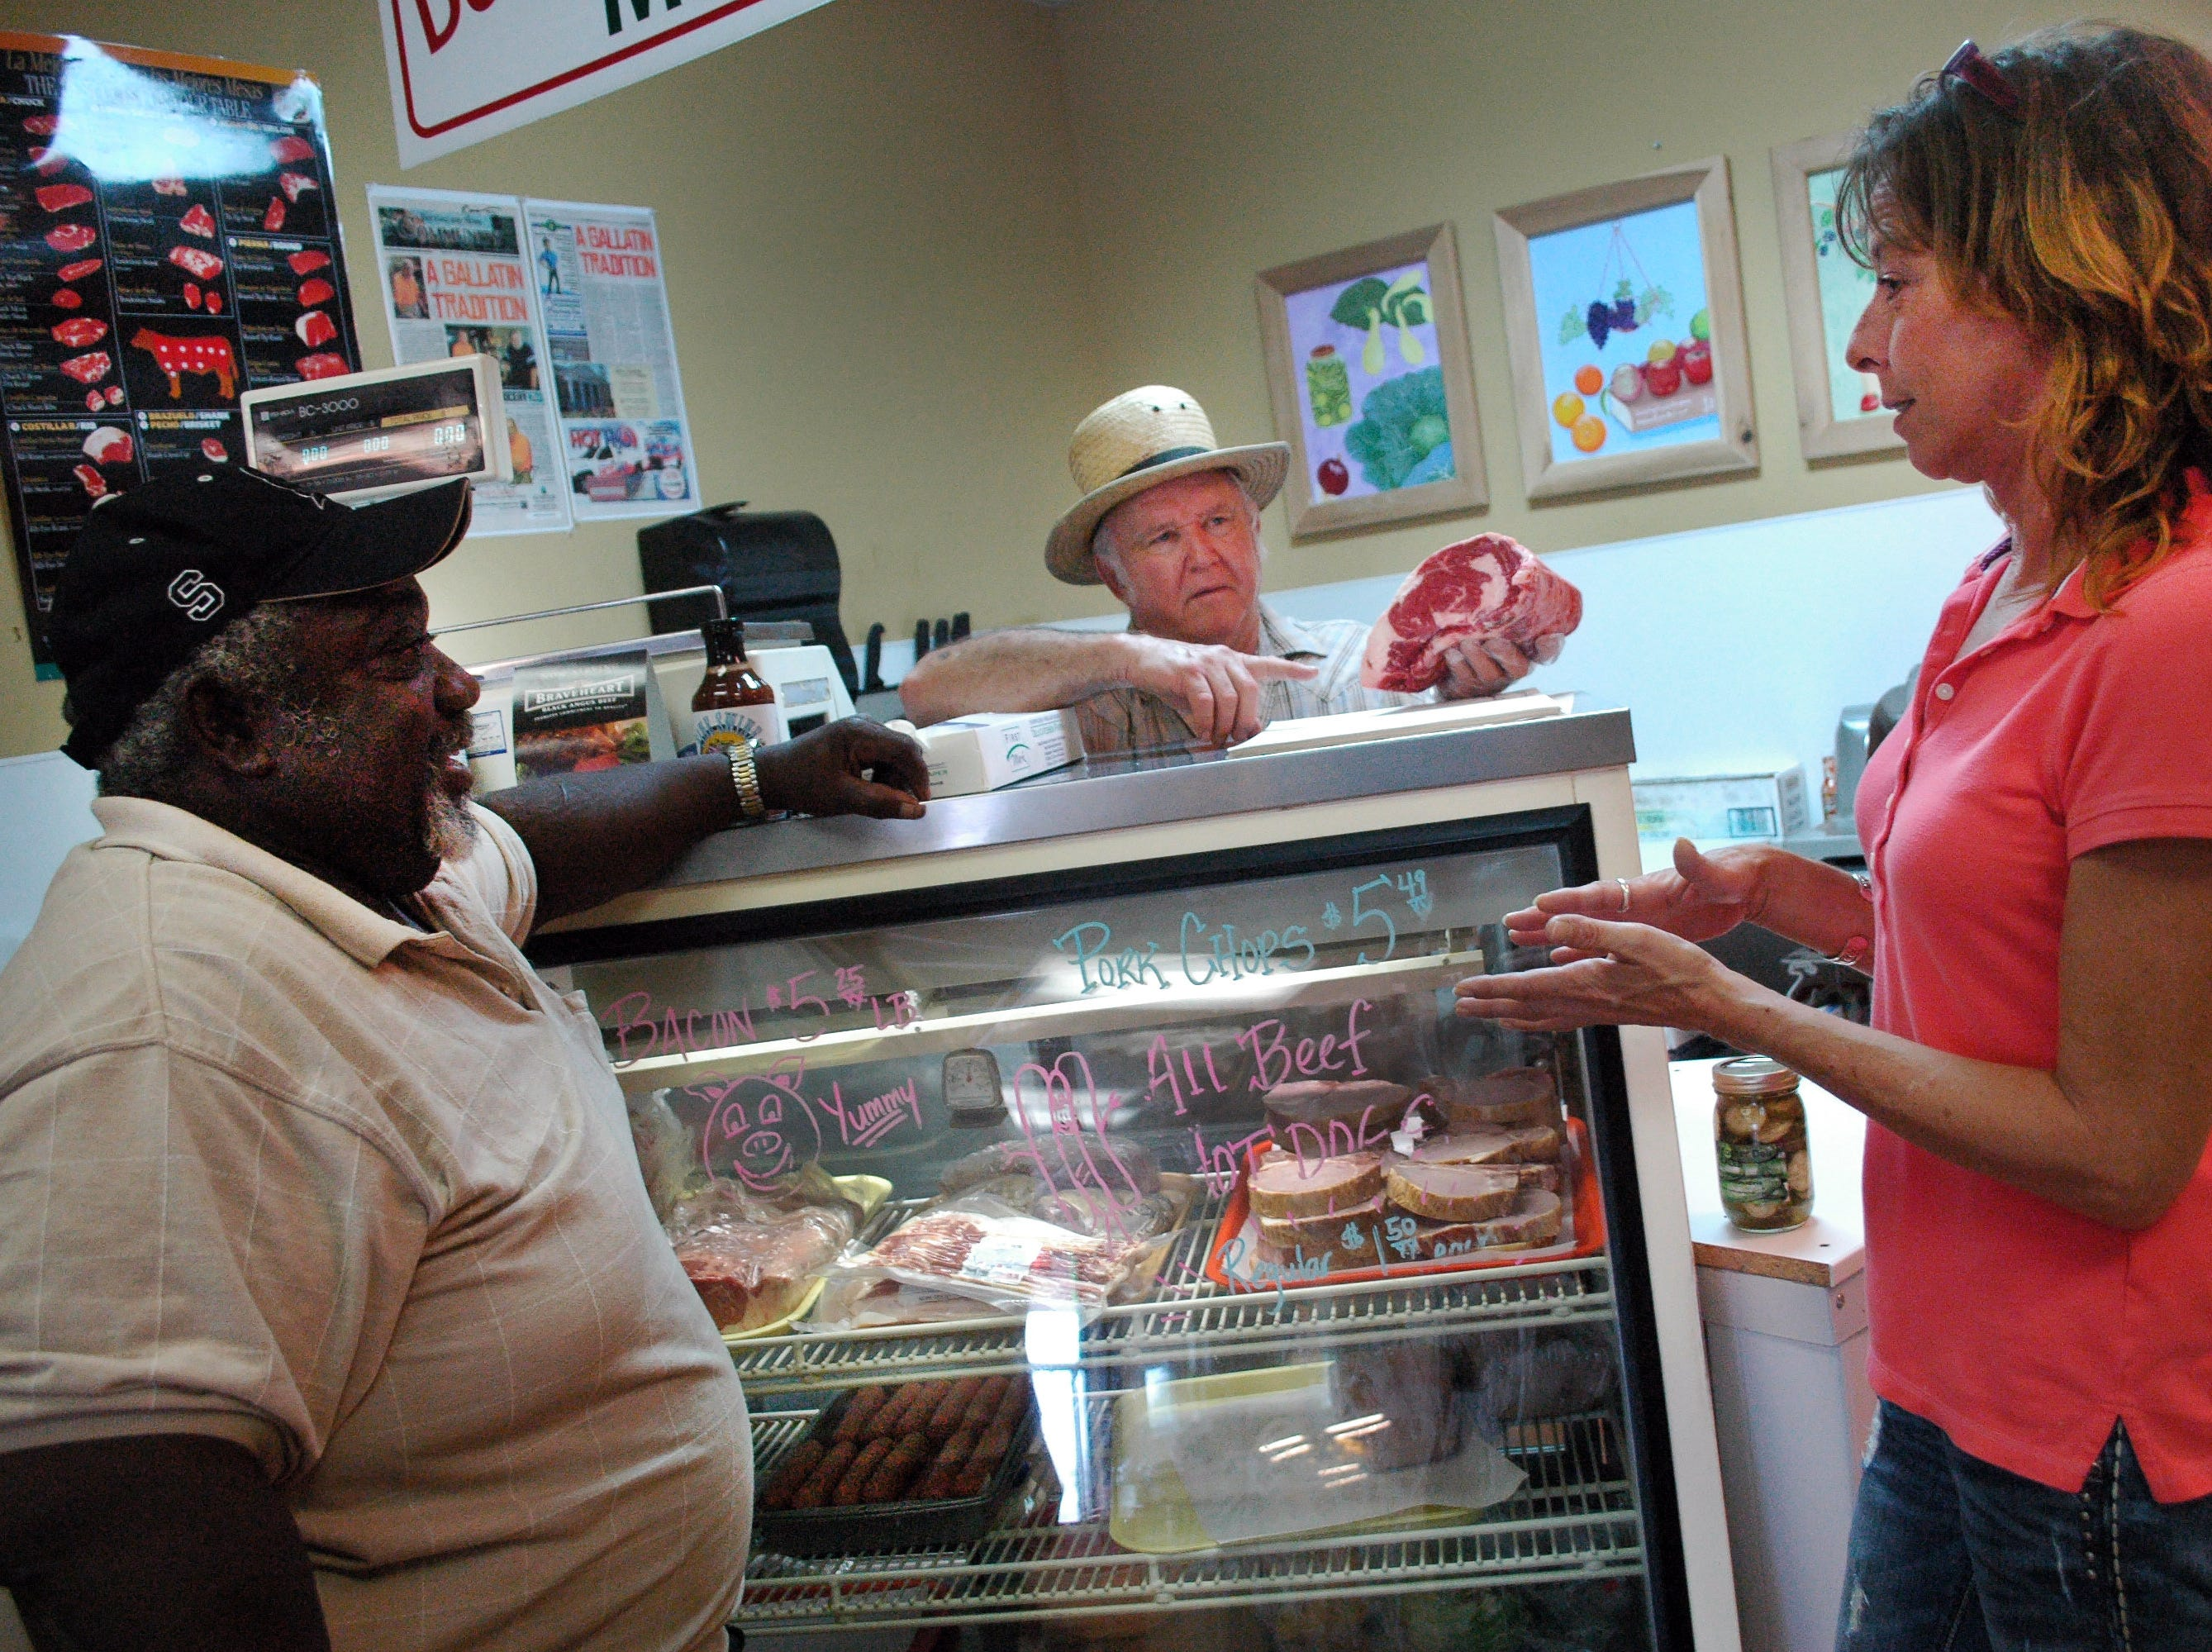 Henry Smith, left, and Tracy Terry chat at Don David's Gallatin store, Don's Market, which sells the meats and sandwiches residents used to find at Weyman Terry's butcher shop for six decades.